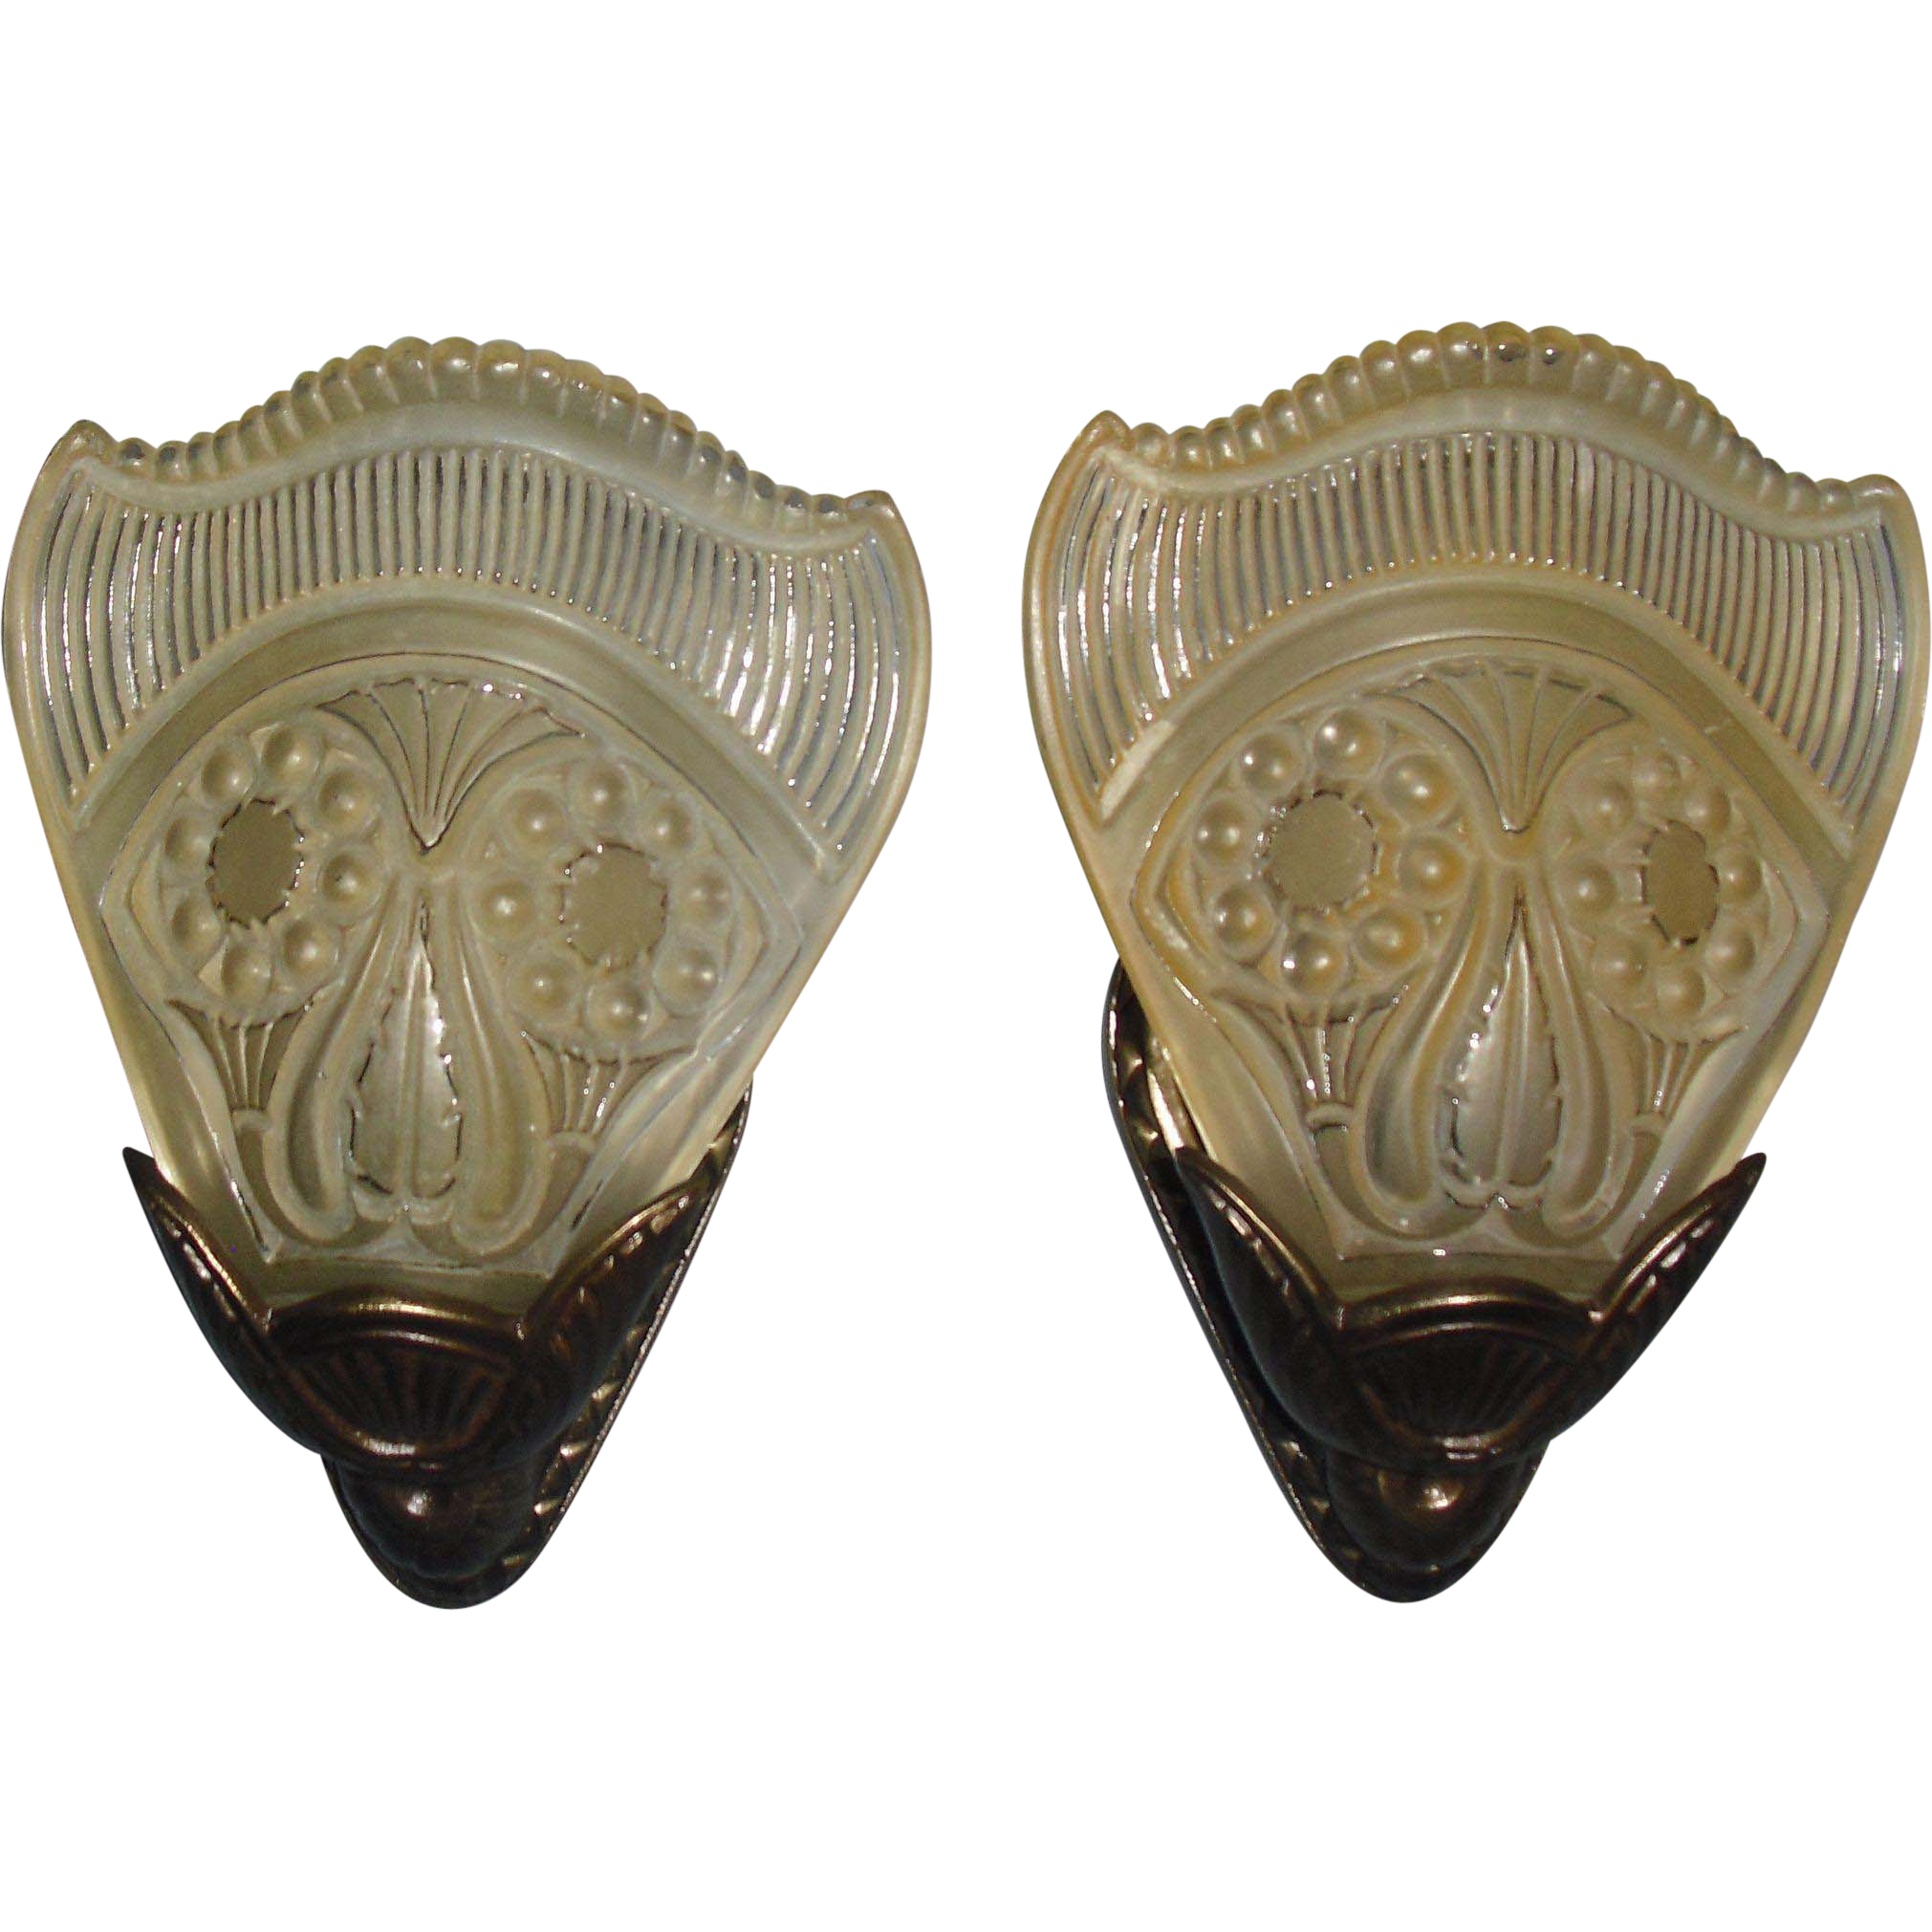 Lightolier Art Deco Slip Shade Bronze Wall Sconces - 2 pair available